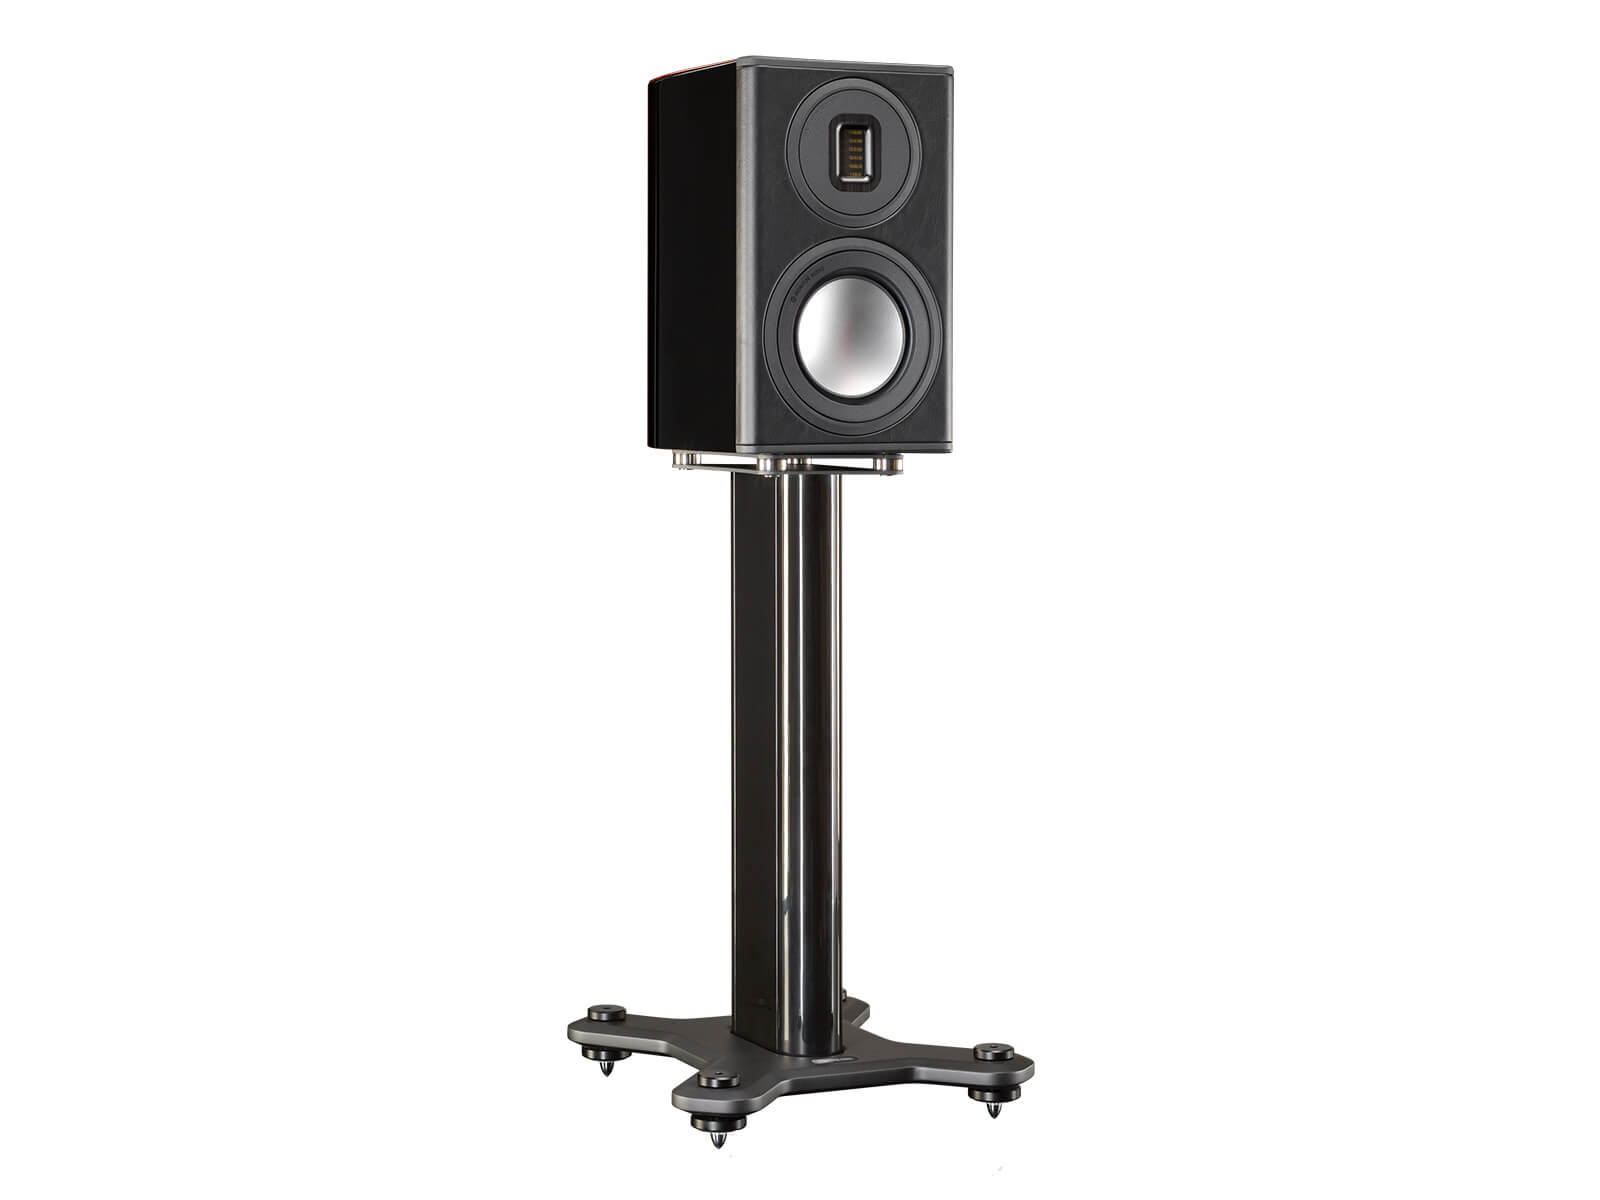 Platinum PL100 II, grille-less bookshelf speakers, with a santos rosewood real wood veneer finish.